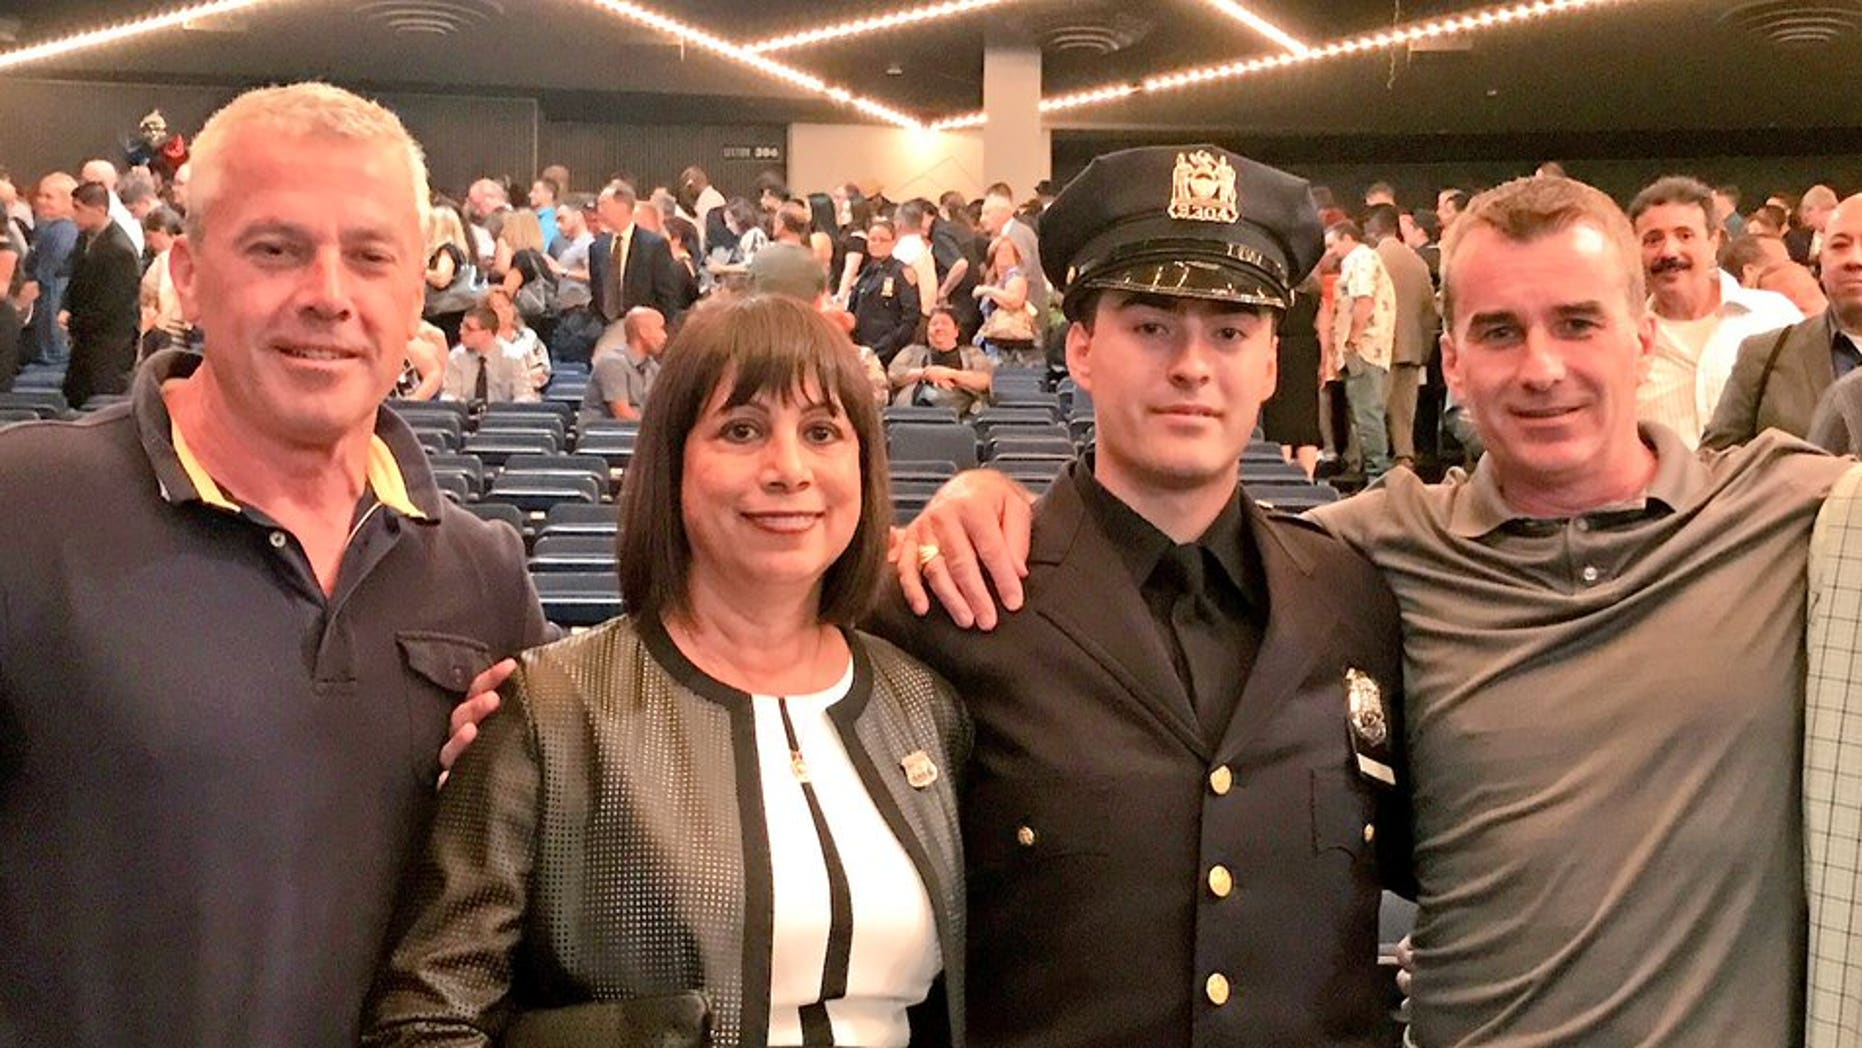 Four generations of Donnellans joined the NYPD force. Ryan Donnellan graduated from the Police Academy on Thursday. (NYPD Det. James Byrne/Twitter)